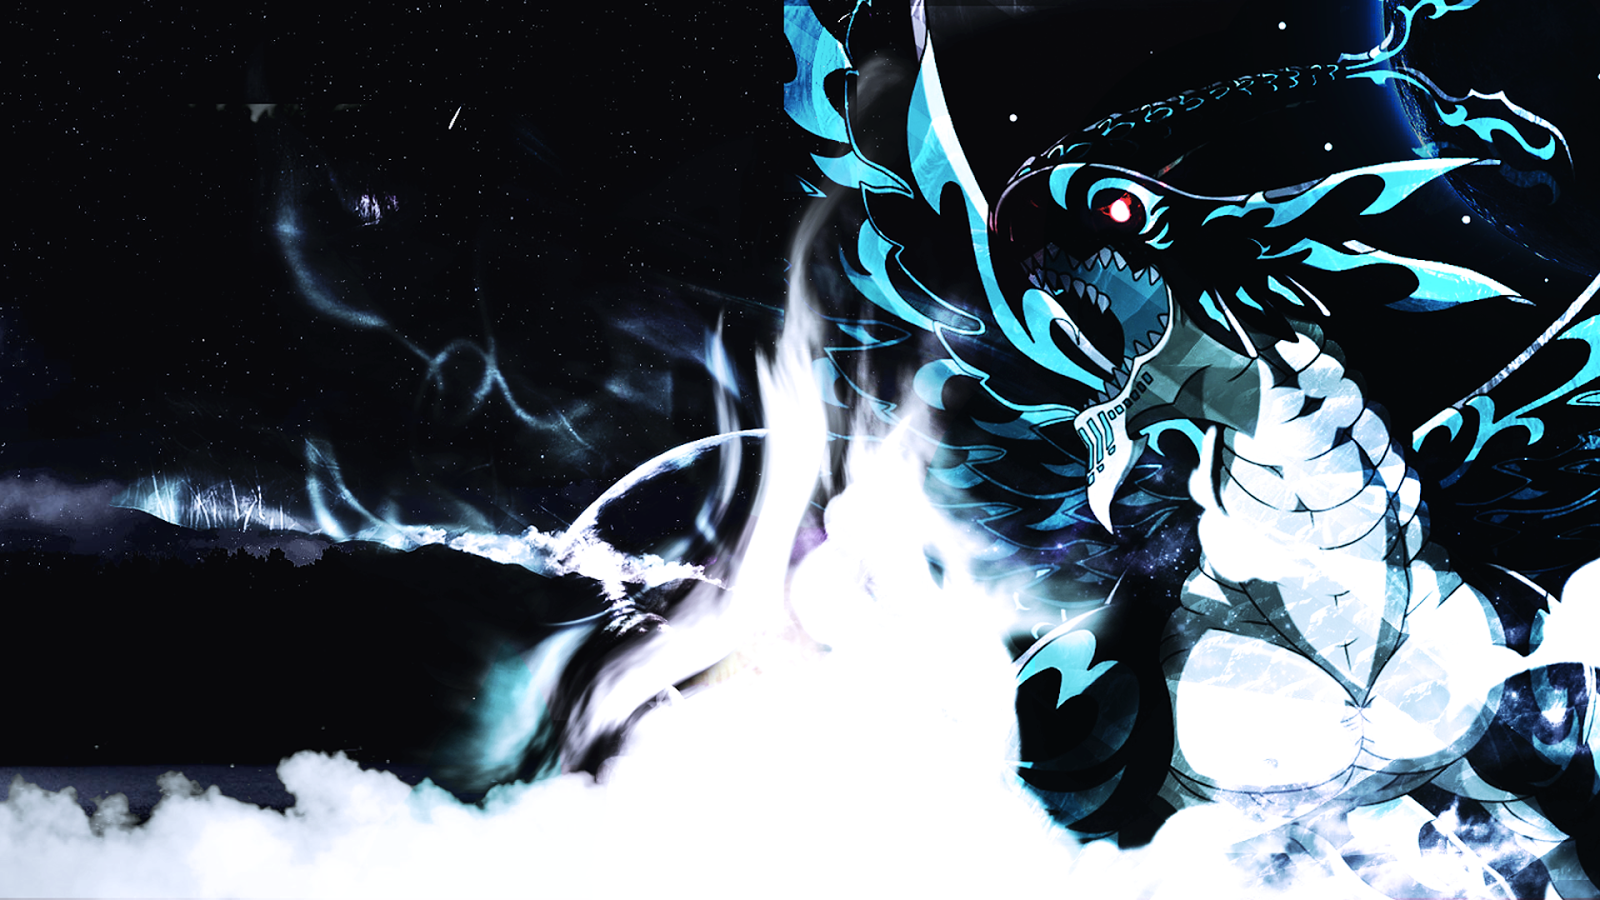 fairy tail wallpaper design anime is high definition wallpaper you 1600x900